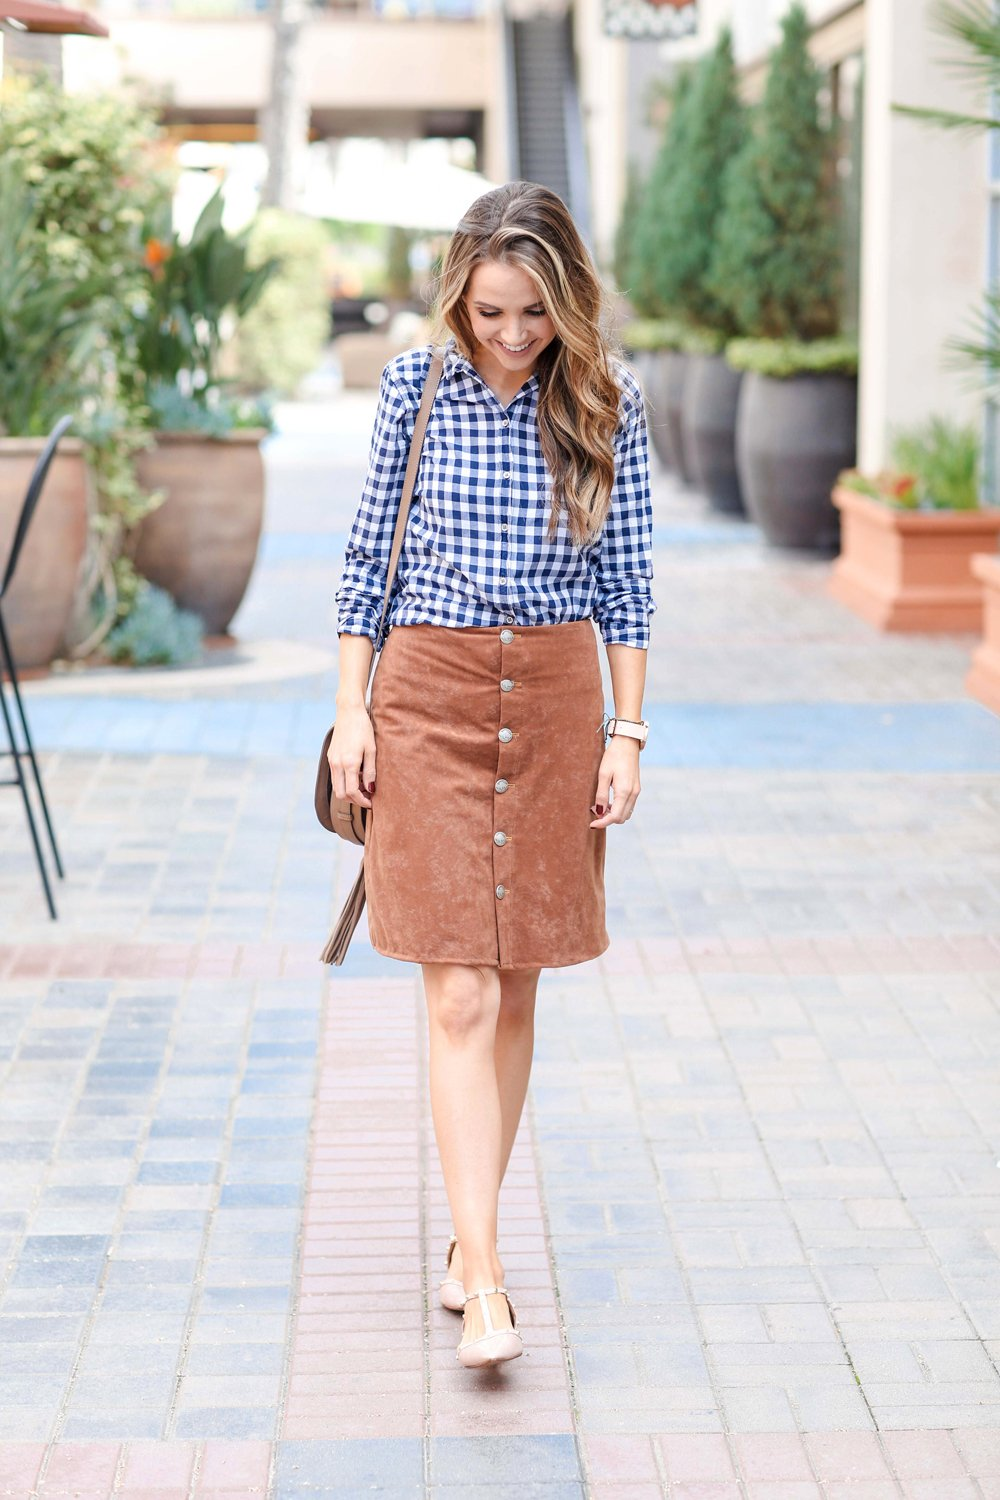 Merrick's Art Suede Skirt and Gingham Top